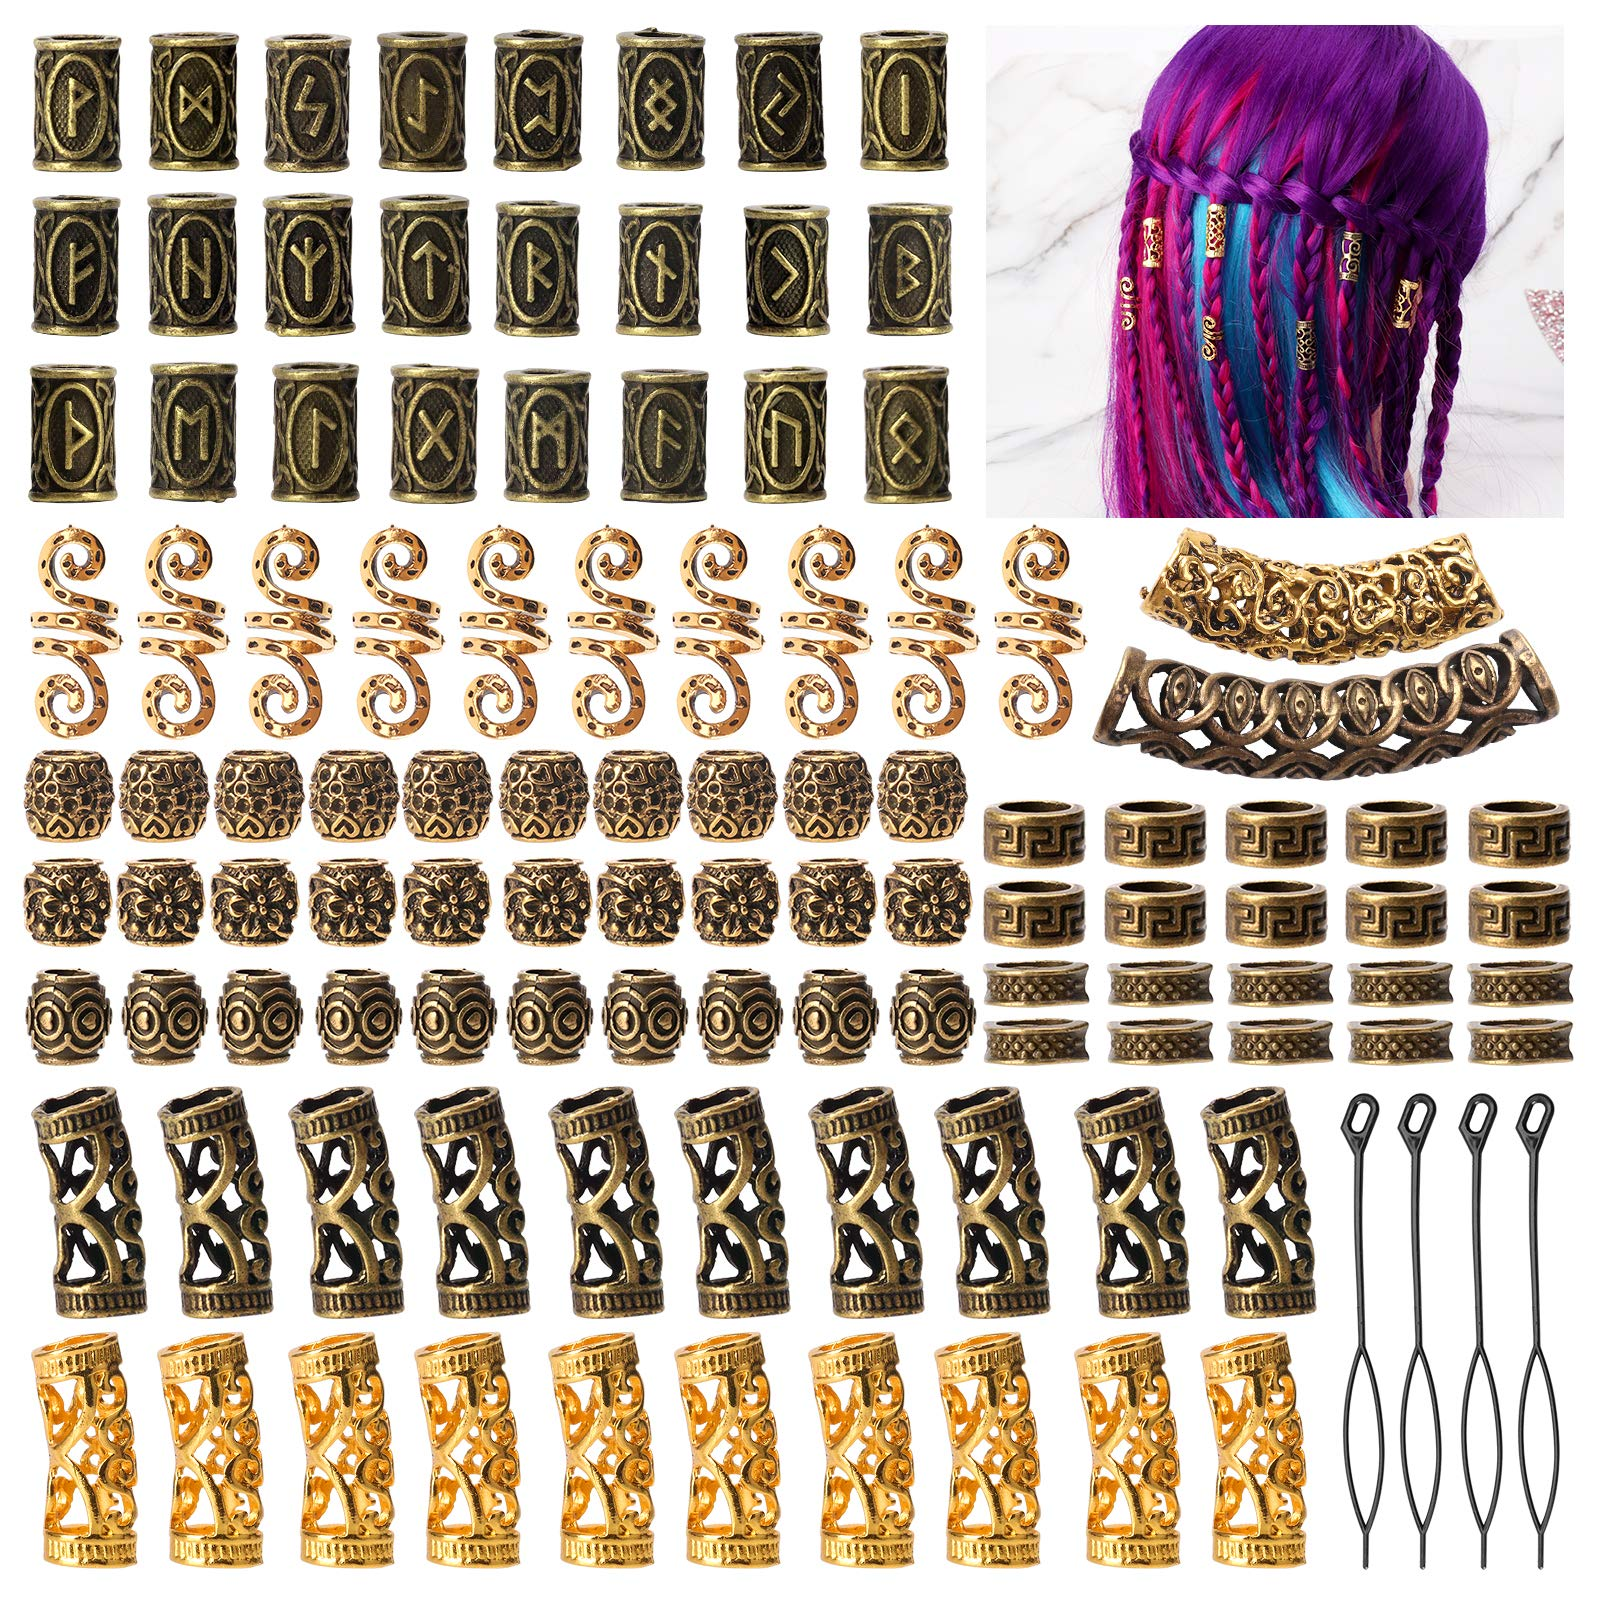 Viking Runes Hair Tube Beads cenoz 110Pcs Beard Beads with Pull Hair Pin Norse Dreadlocks Rings Hair Bead Decoration Beads for Bracelets Pendant Necklace DIY (Ancient Gold Color)